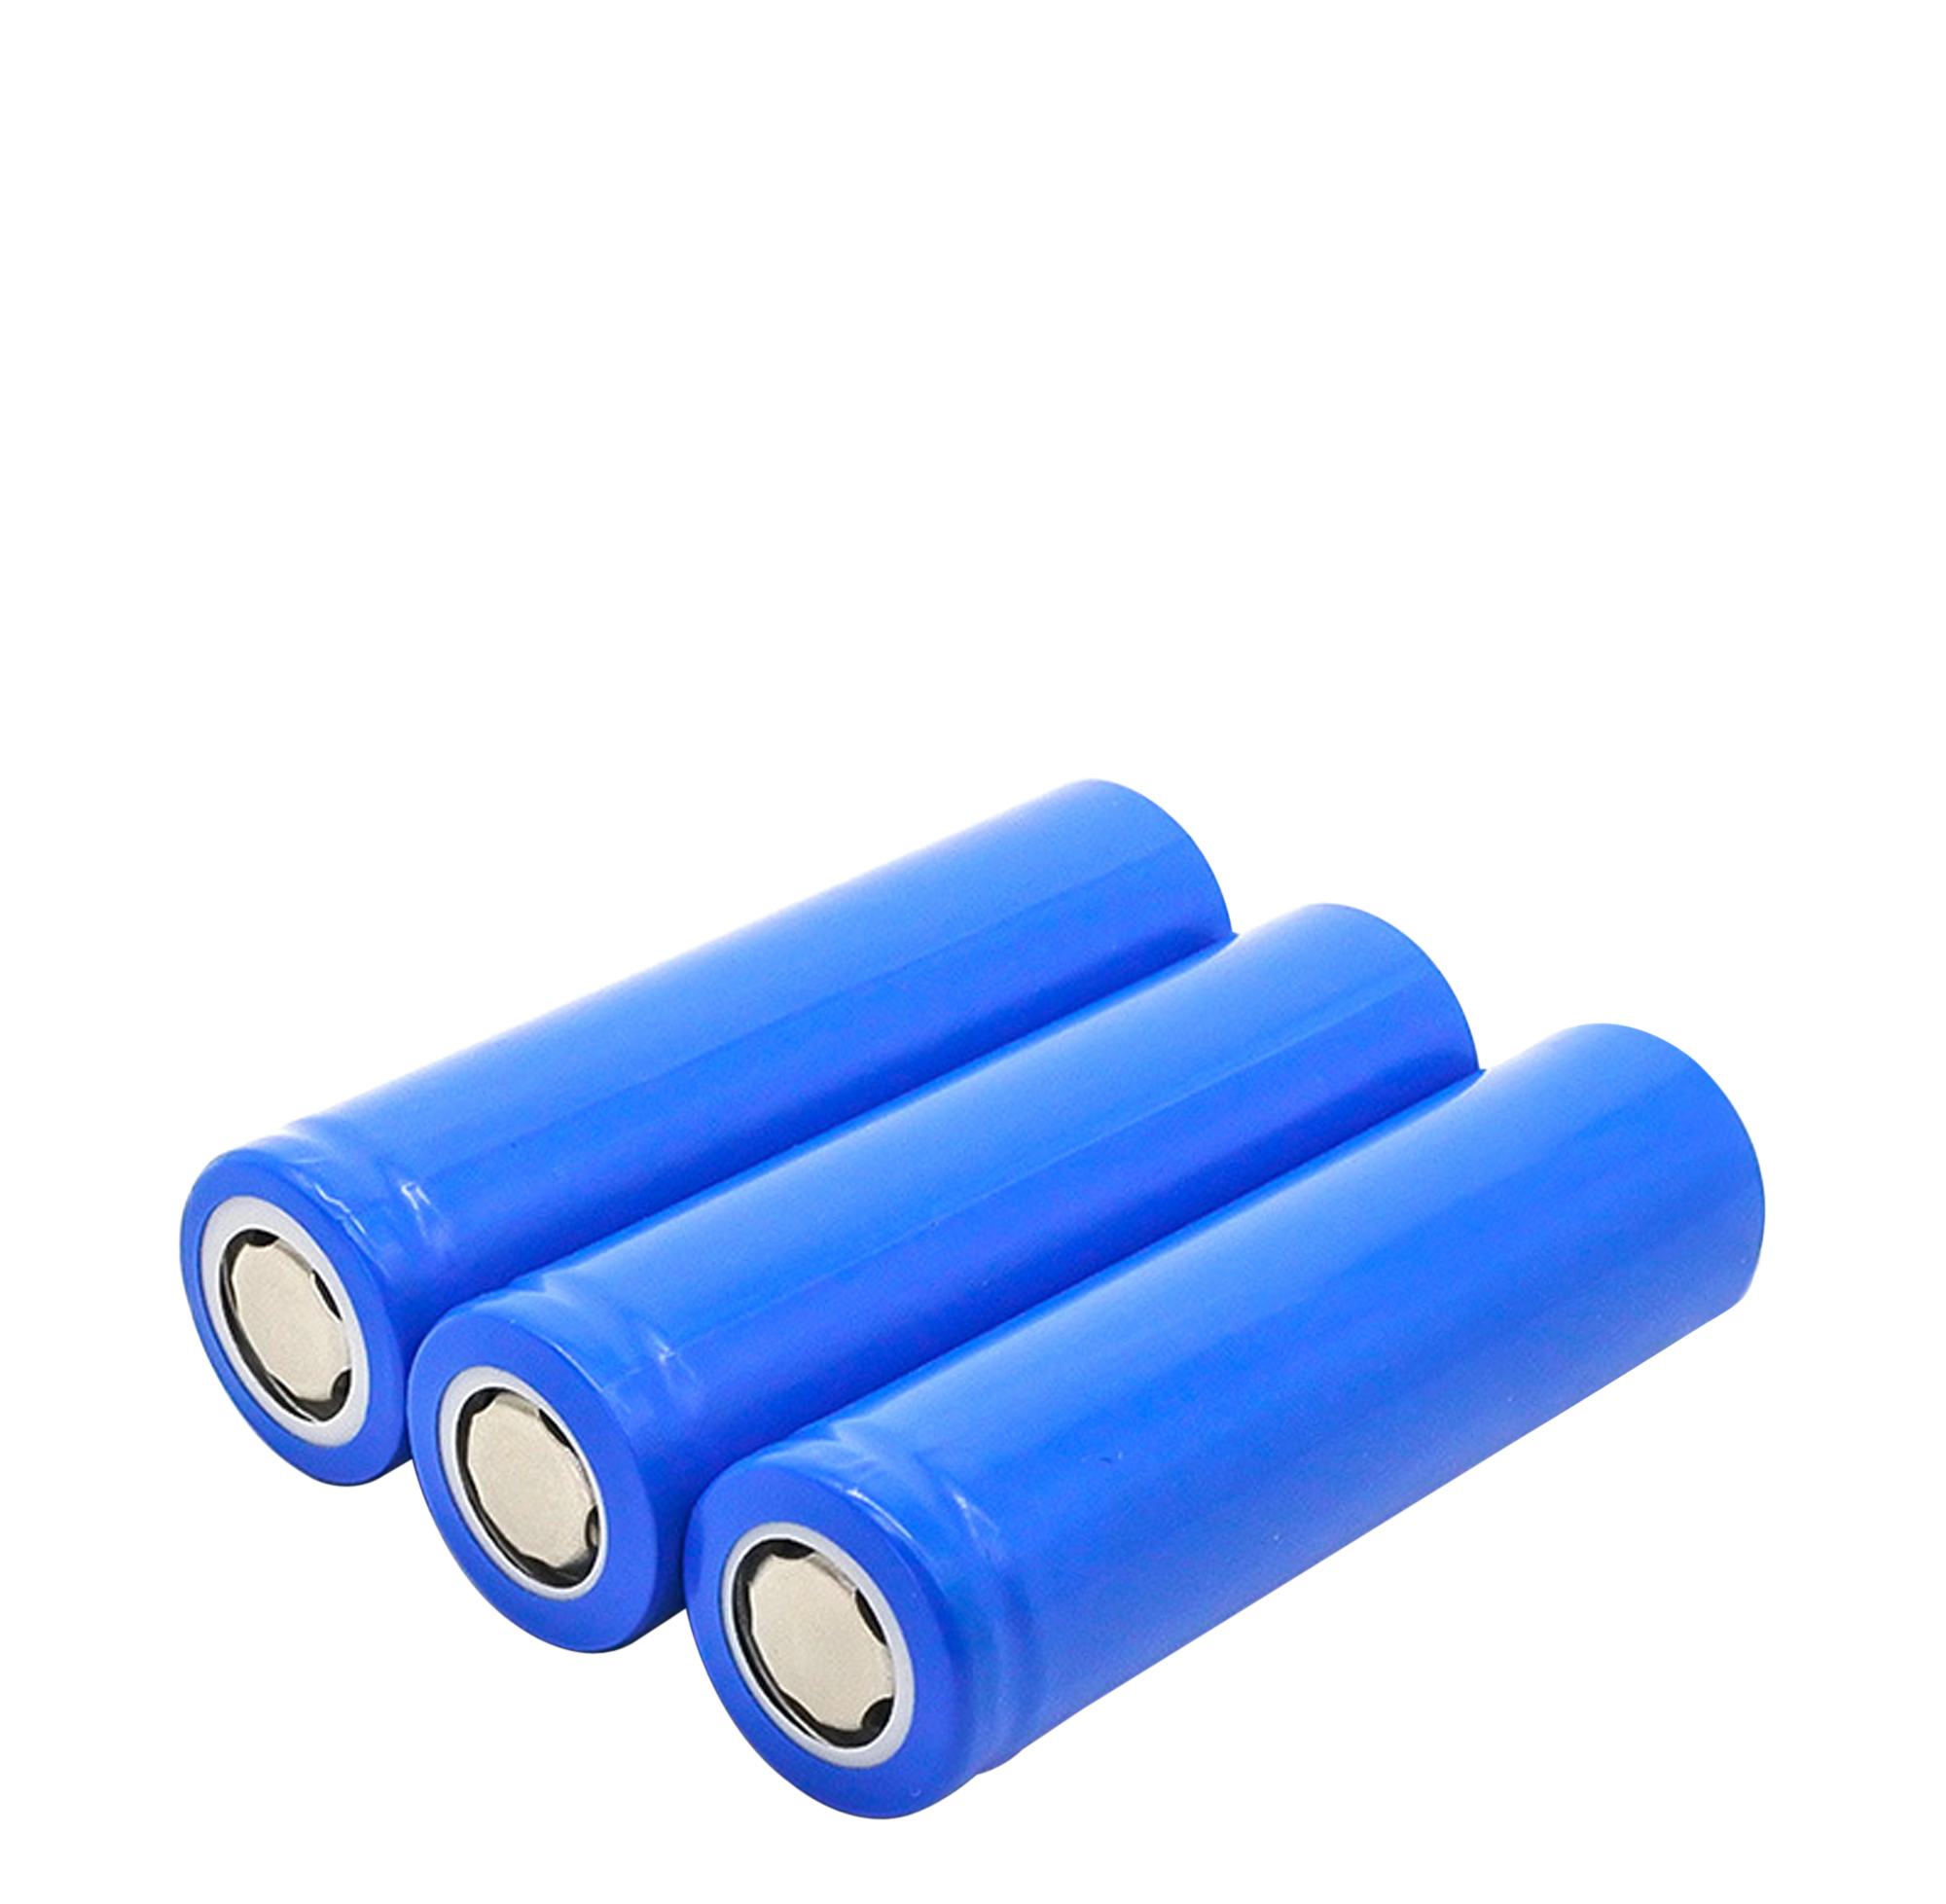 3.7V2000mAH 18650 lithium battery cell for electric consumer electronics